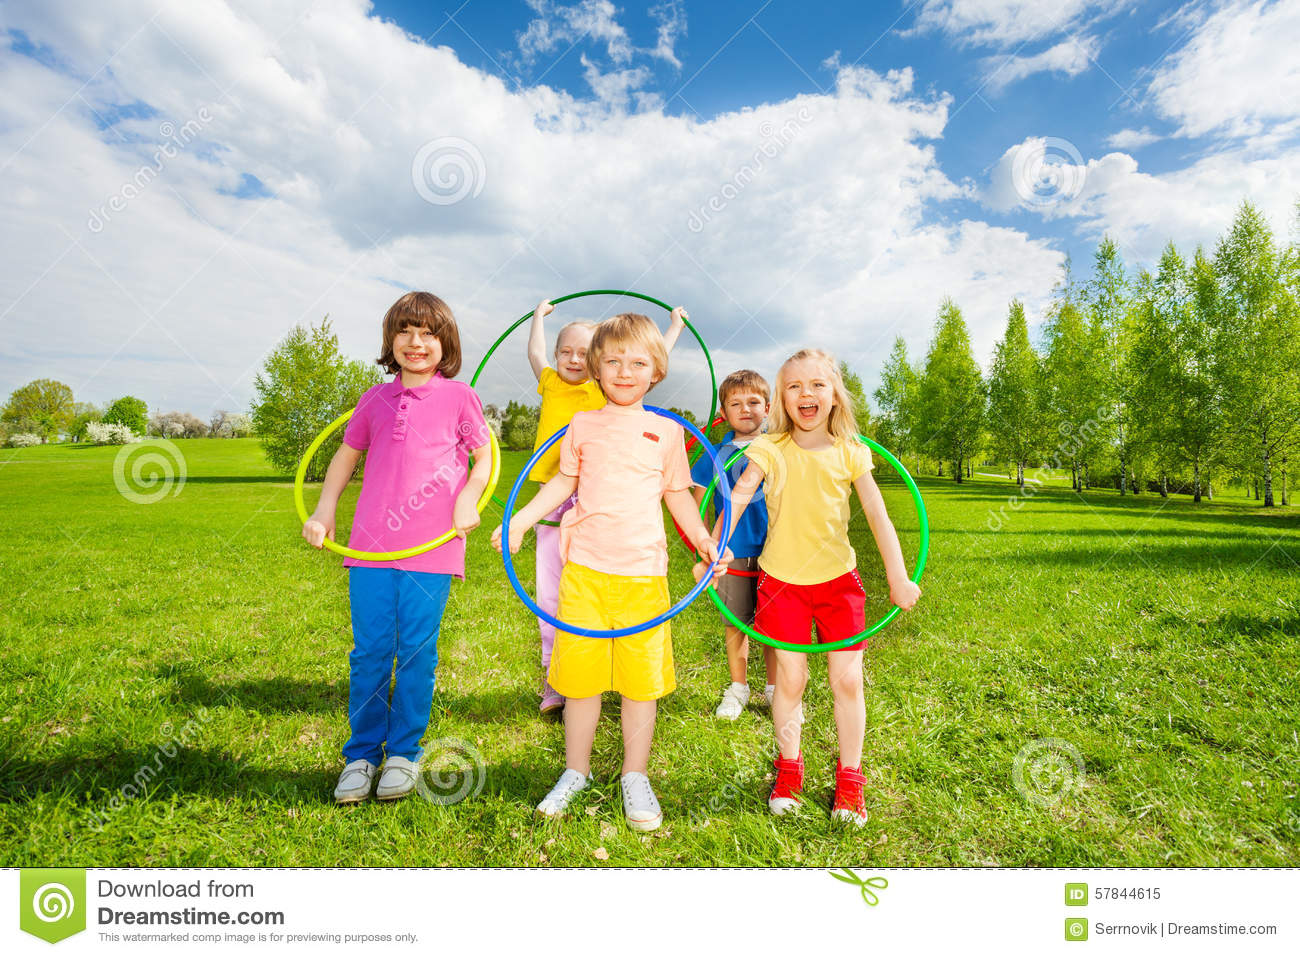 Kids Hold Hula Hoops During Exercising Activity Stock Image